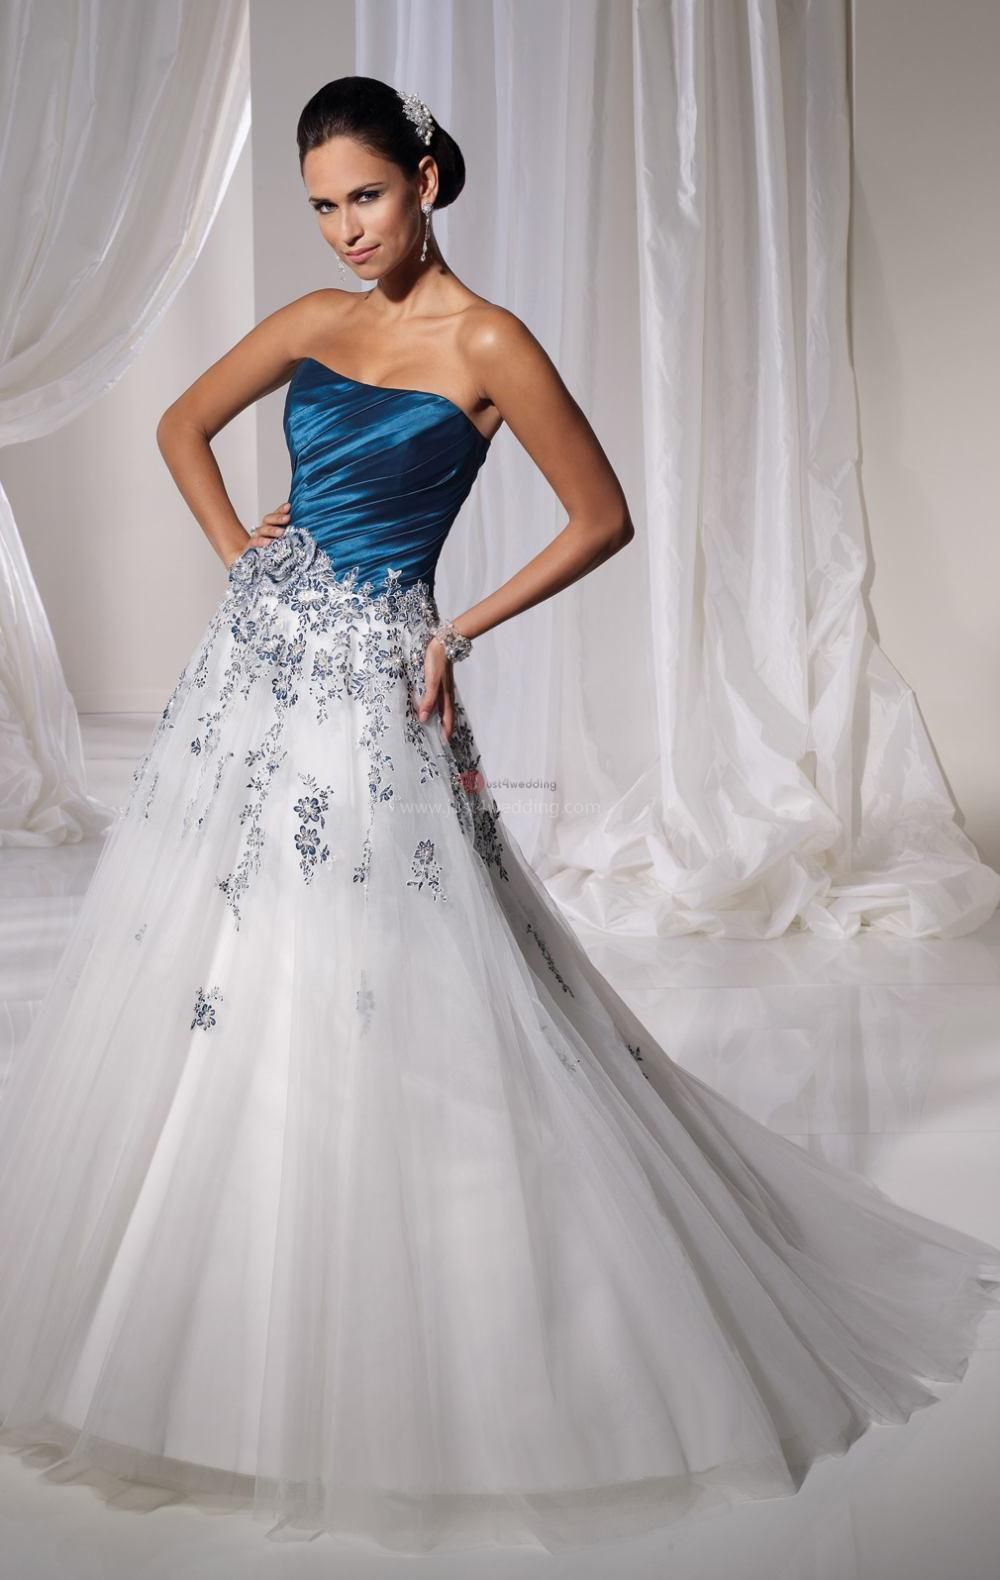 55 Blue Wedding Dress Meaning Cold Shoulder Dresses For Check More At Http